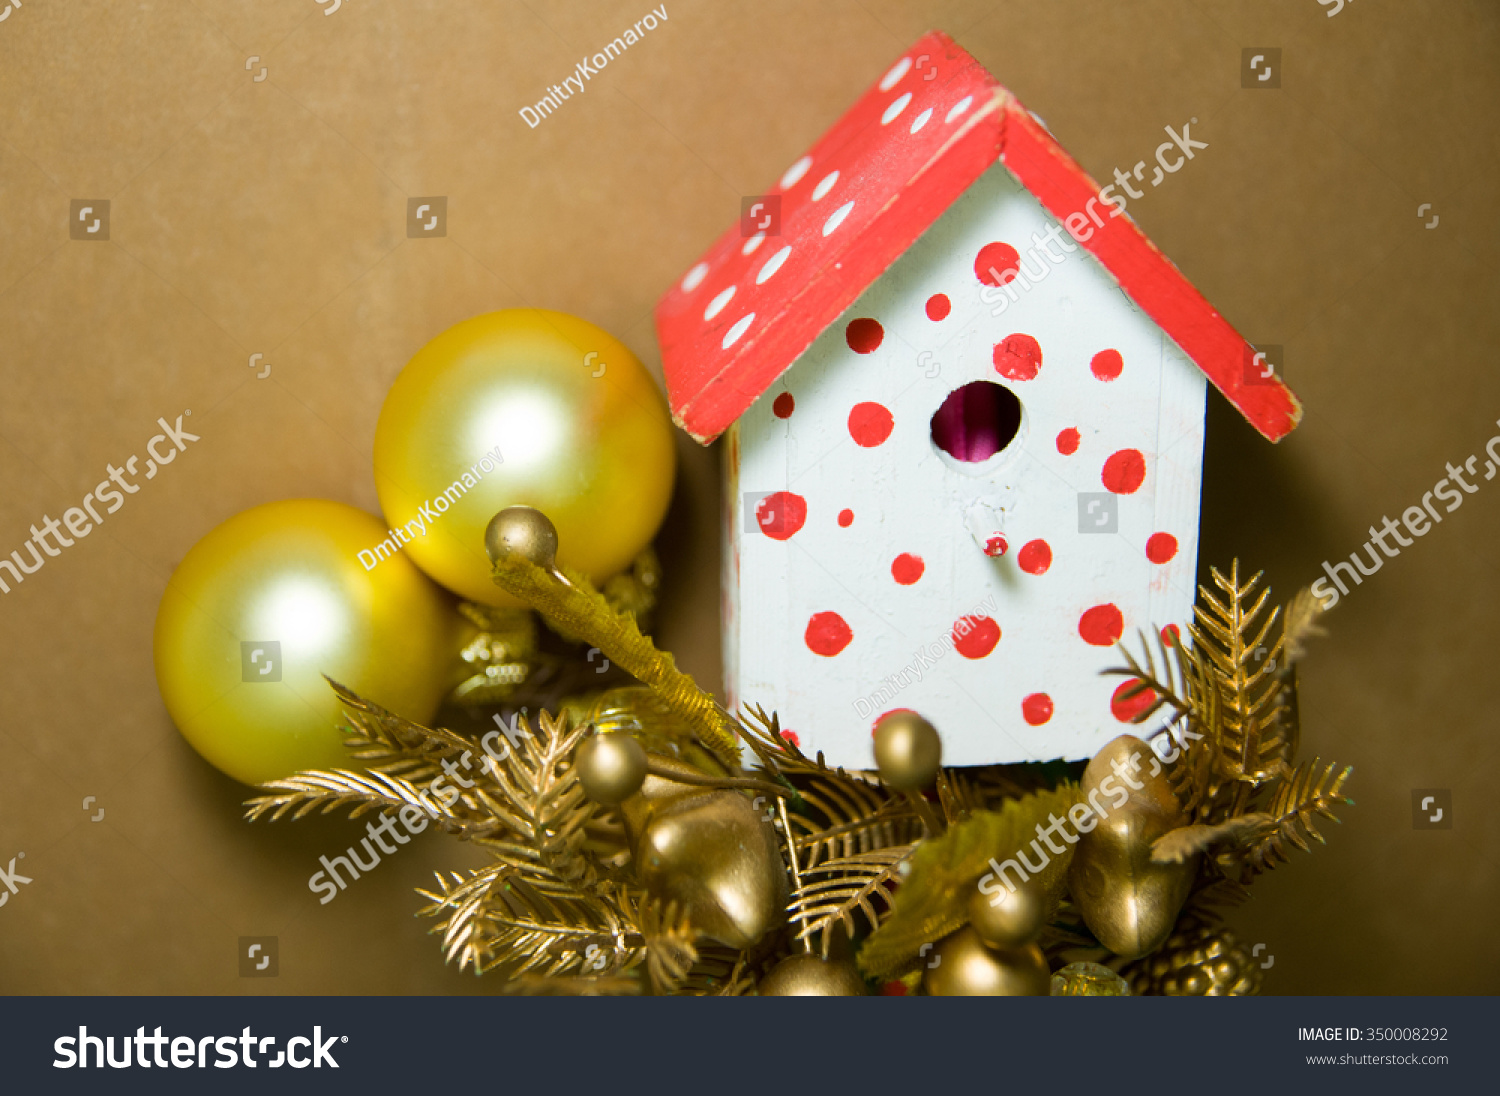 Bird House Christmastree Decorations Brown